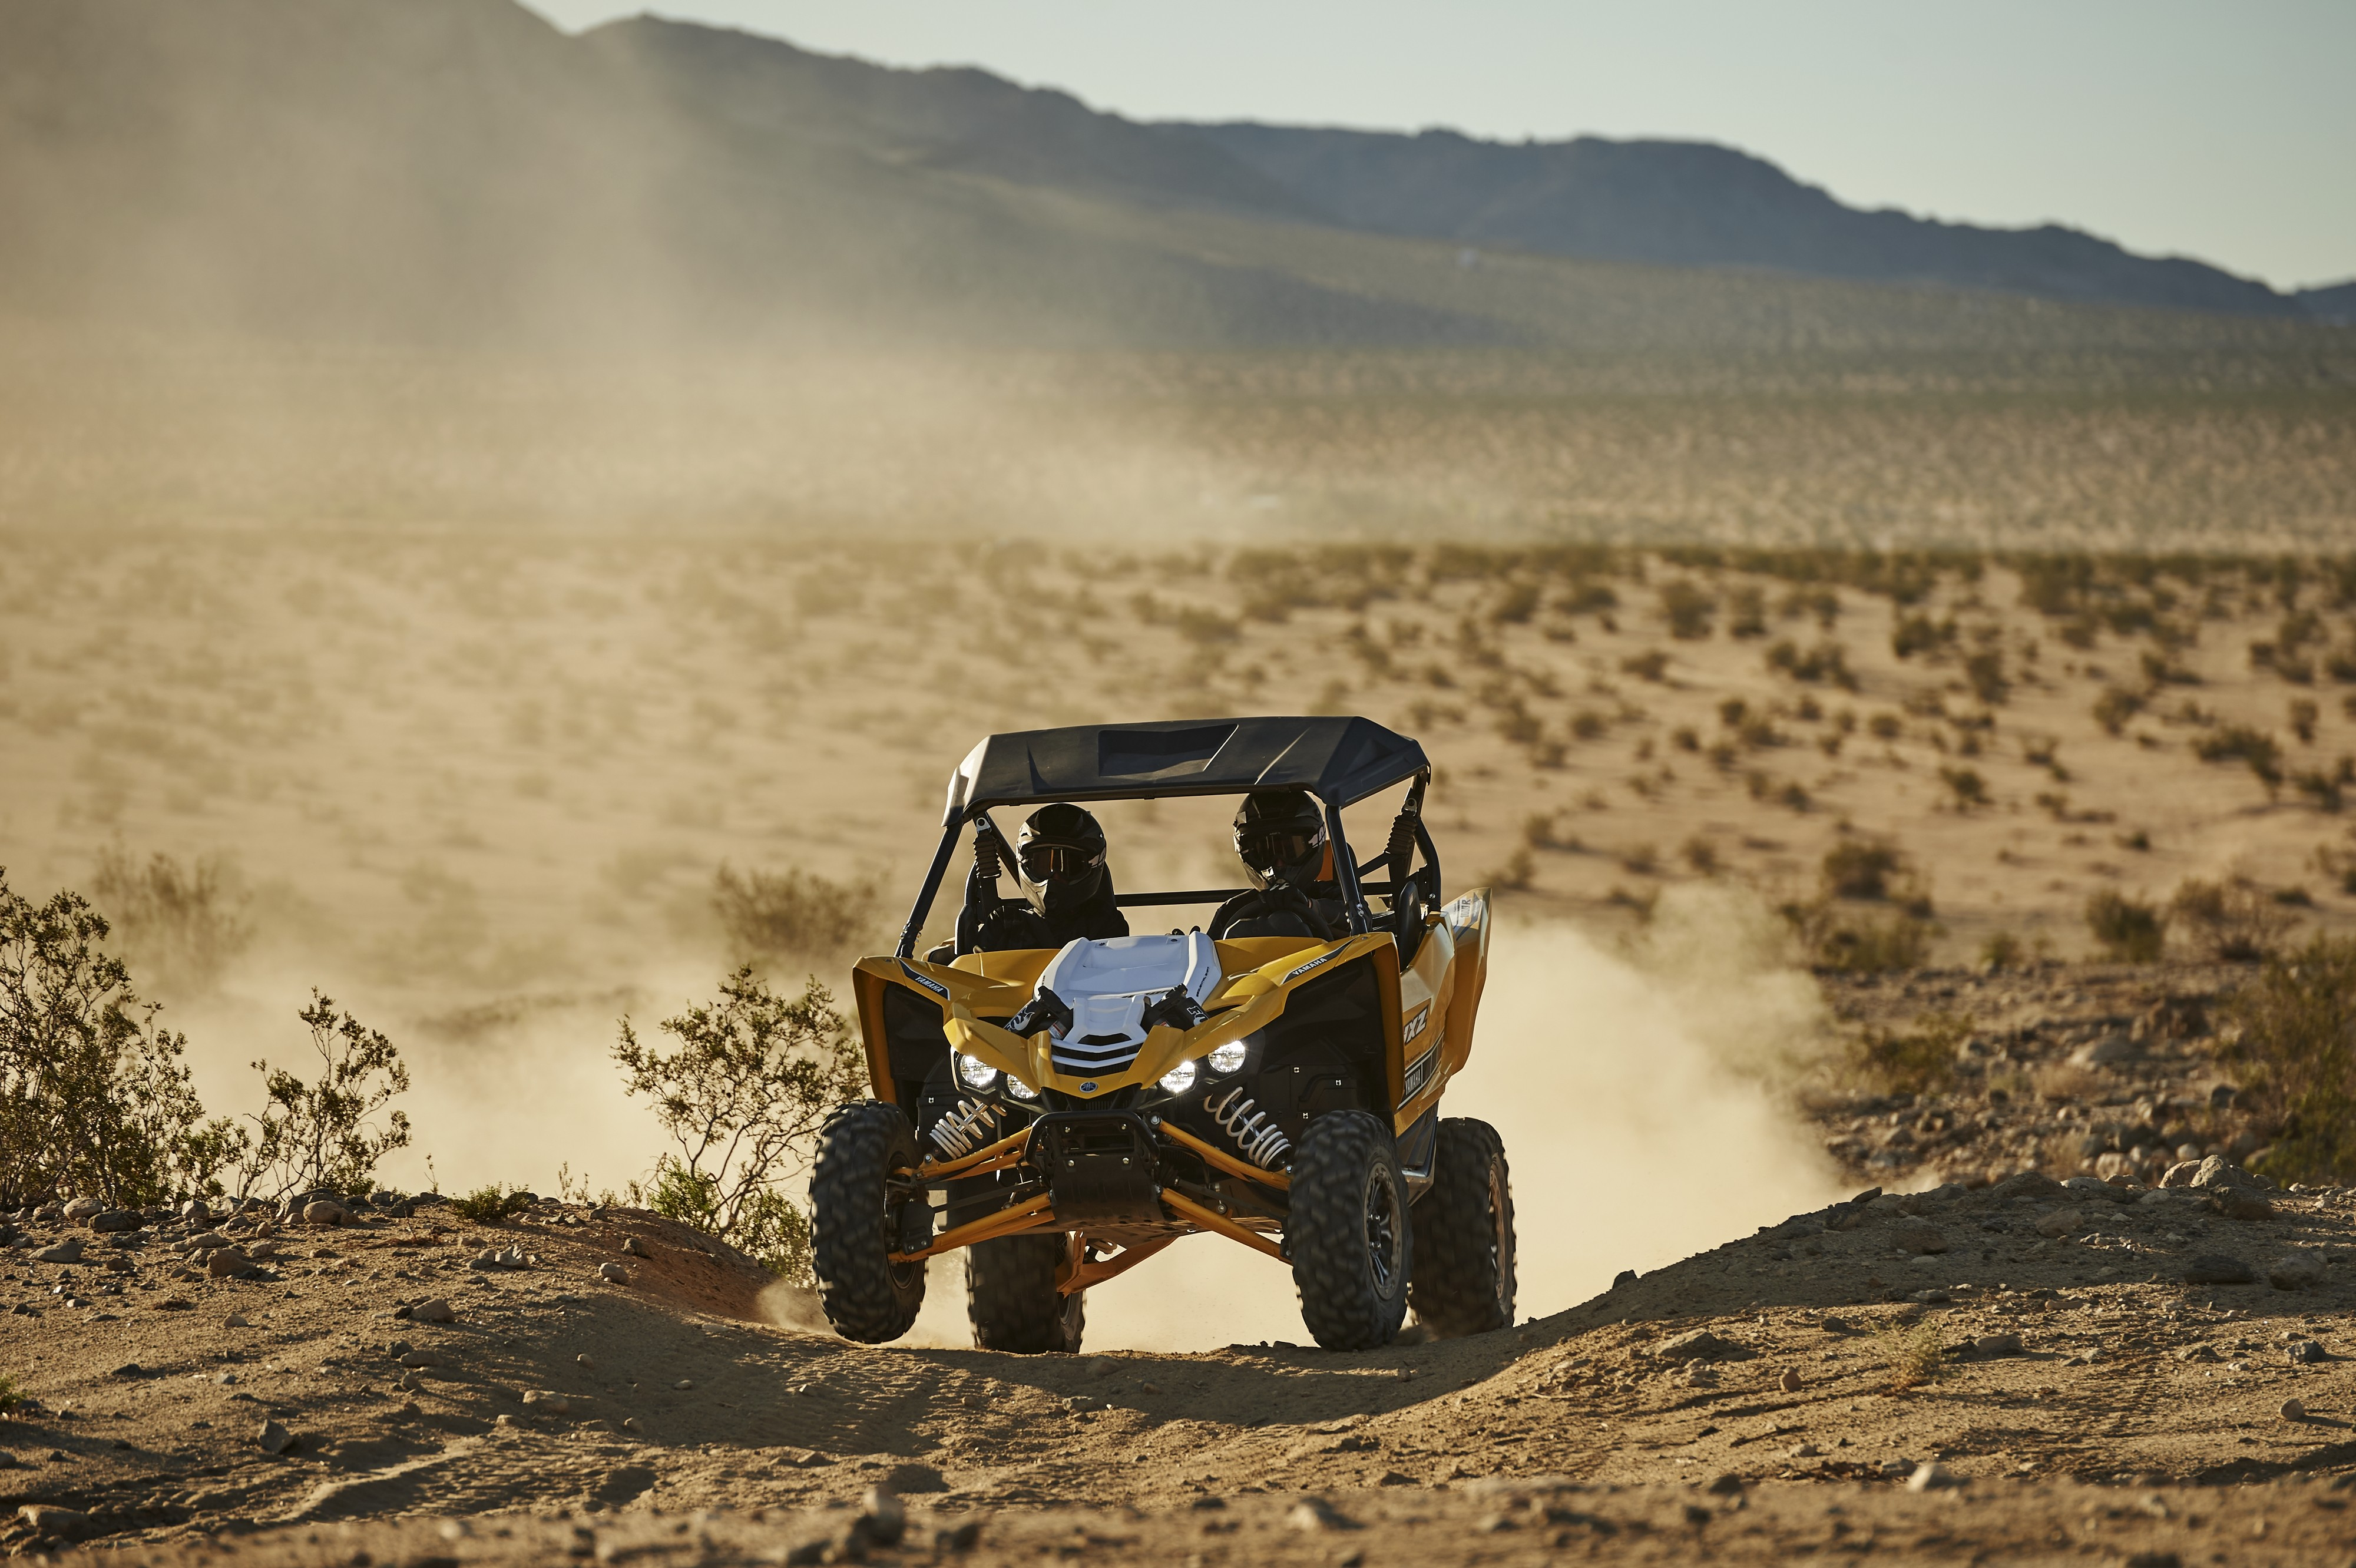 2016-yamaha-yxz1000r-is-a-three-cylinder-supersport-sxs-video-photo-gallery_6